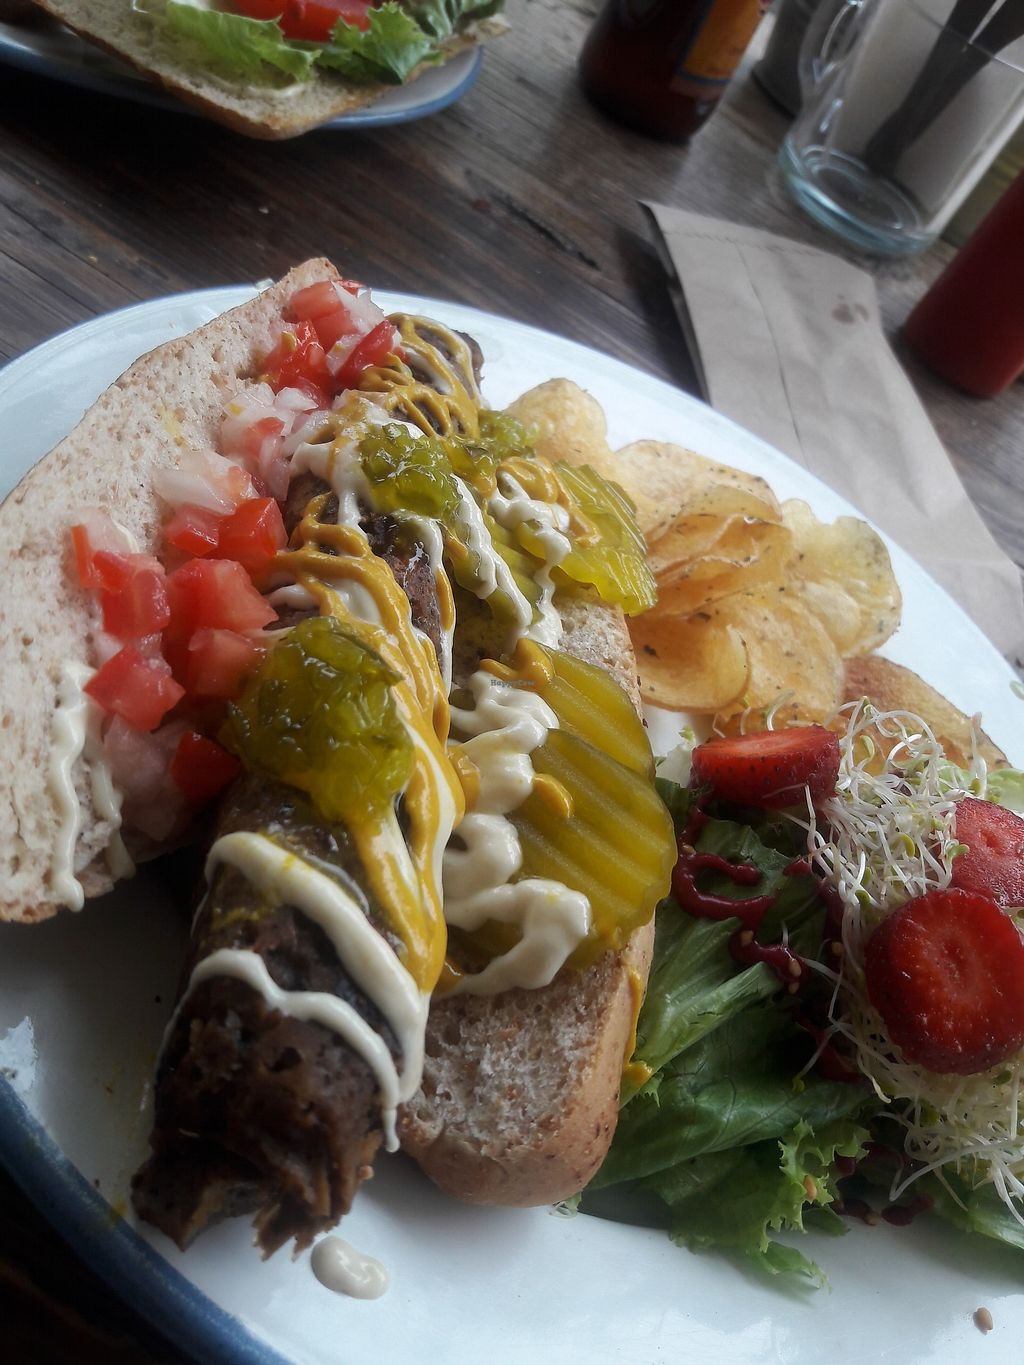 """Photo of CLOSED: Vegan Planet - Mexico City  by <a href=""""/members/profile/DaniLove"""">DaniLove</a> <br/>hot dog mehh <br/> June 27, 2017  - <a href='/contact/abuse/image/71863/273900'>Report</a>"""